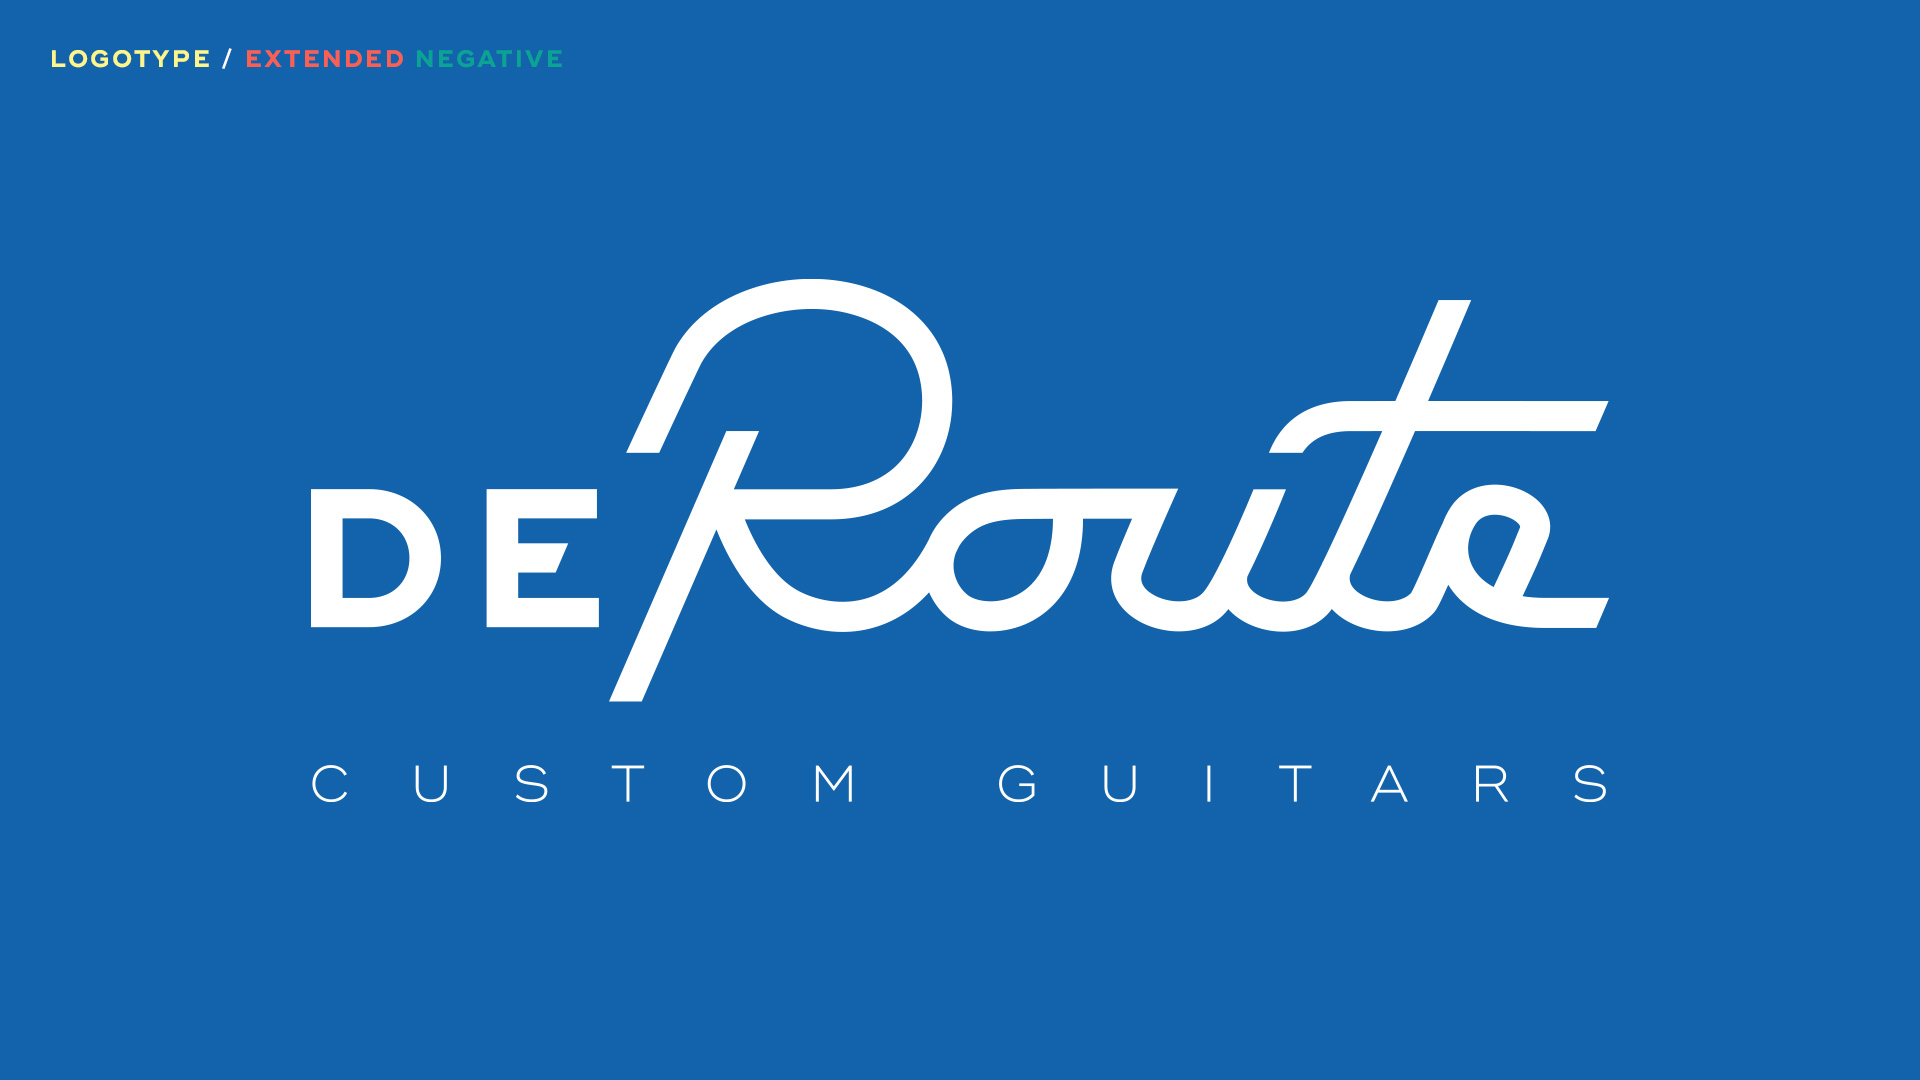 DeRoute-Visual-Identity-by-Emtisquare-6